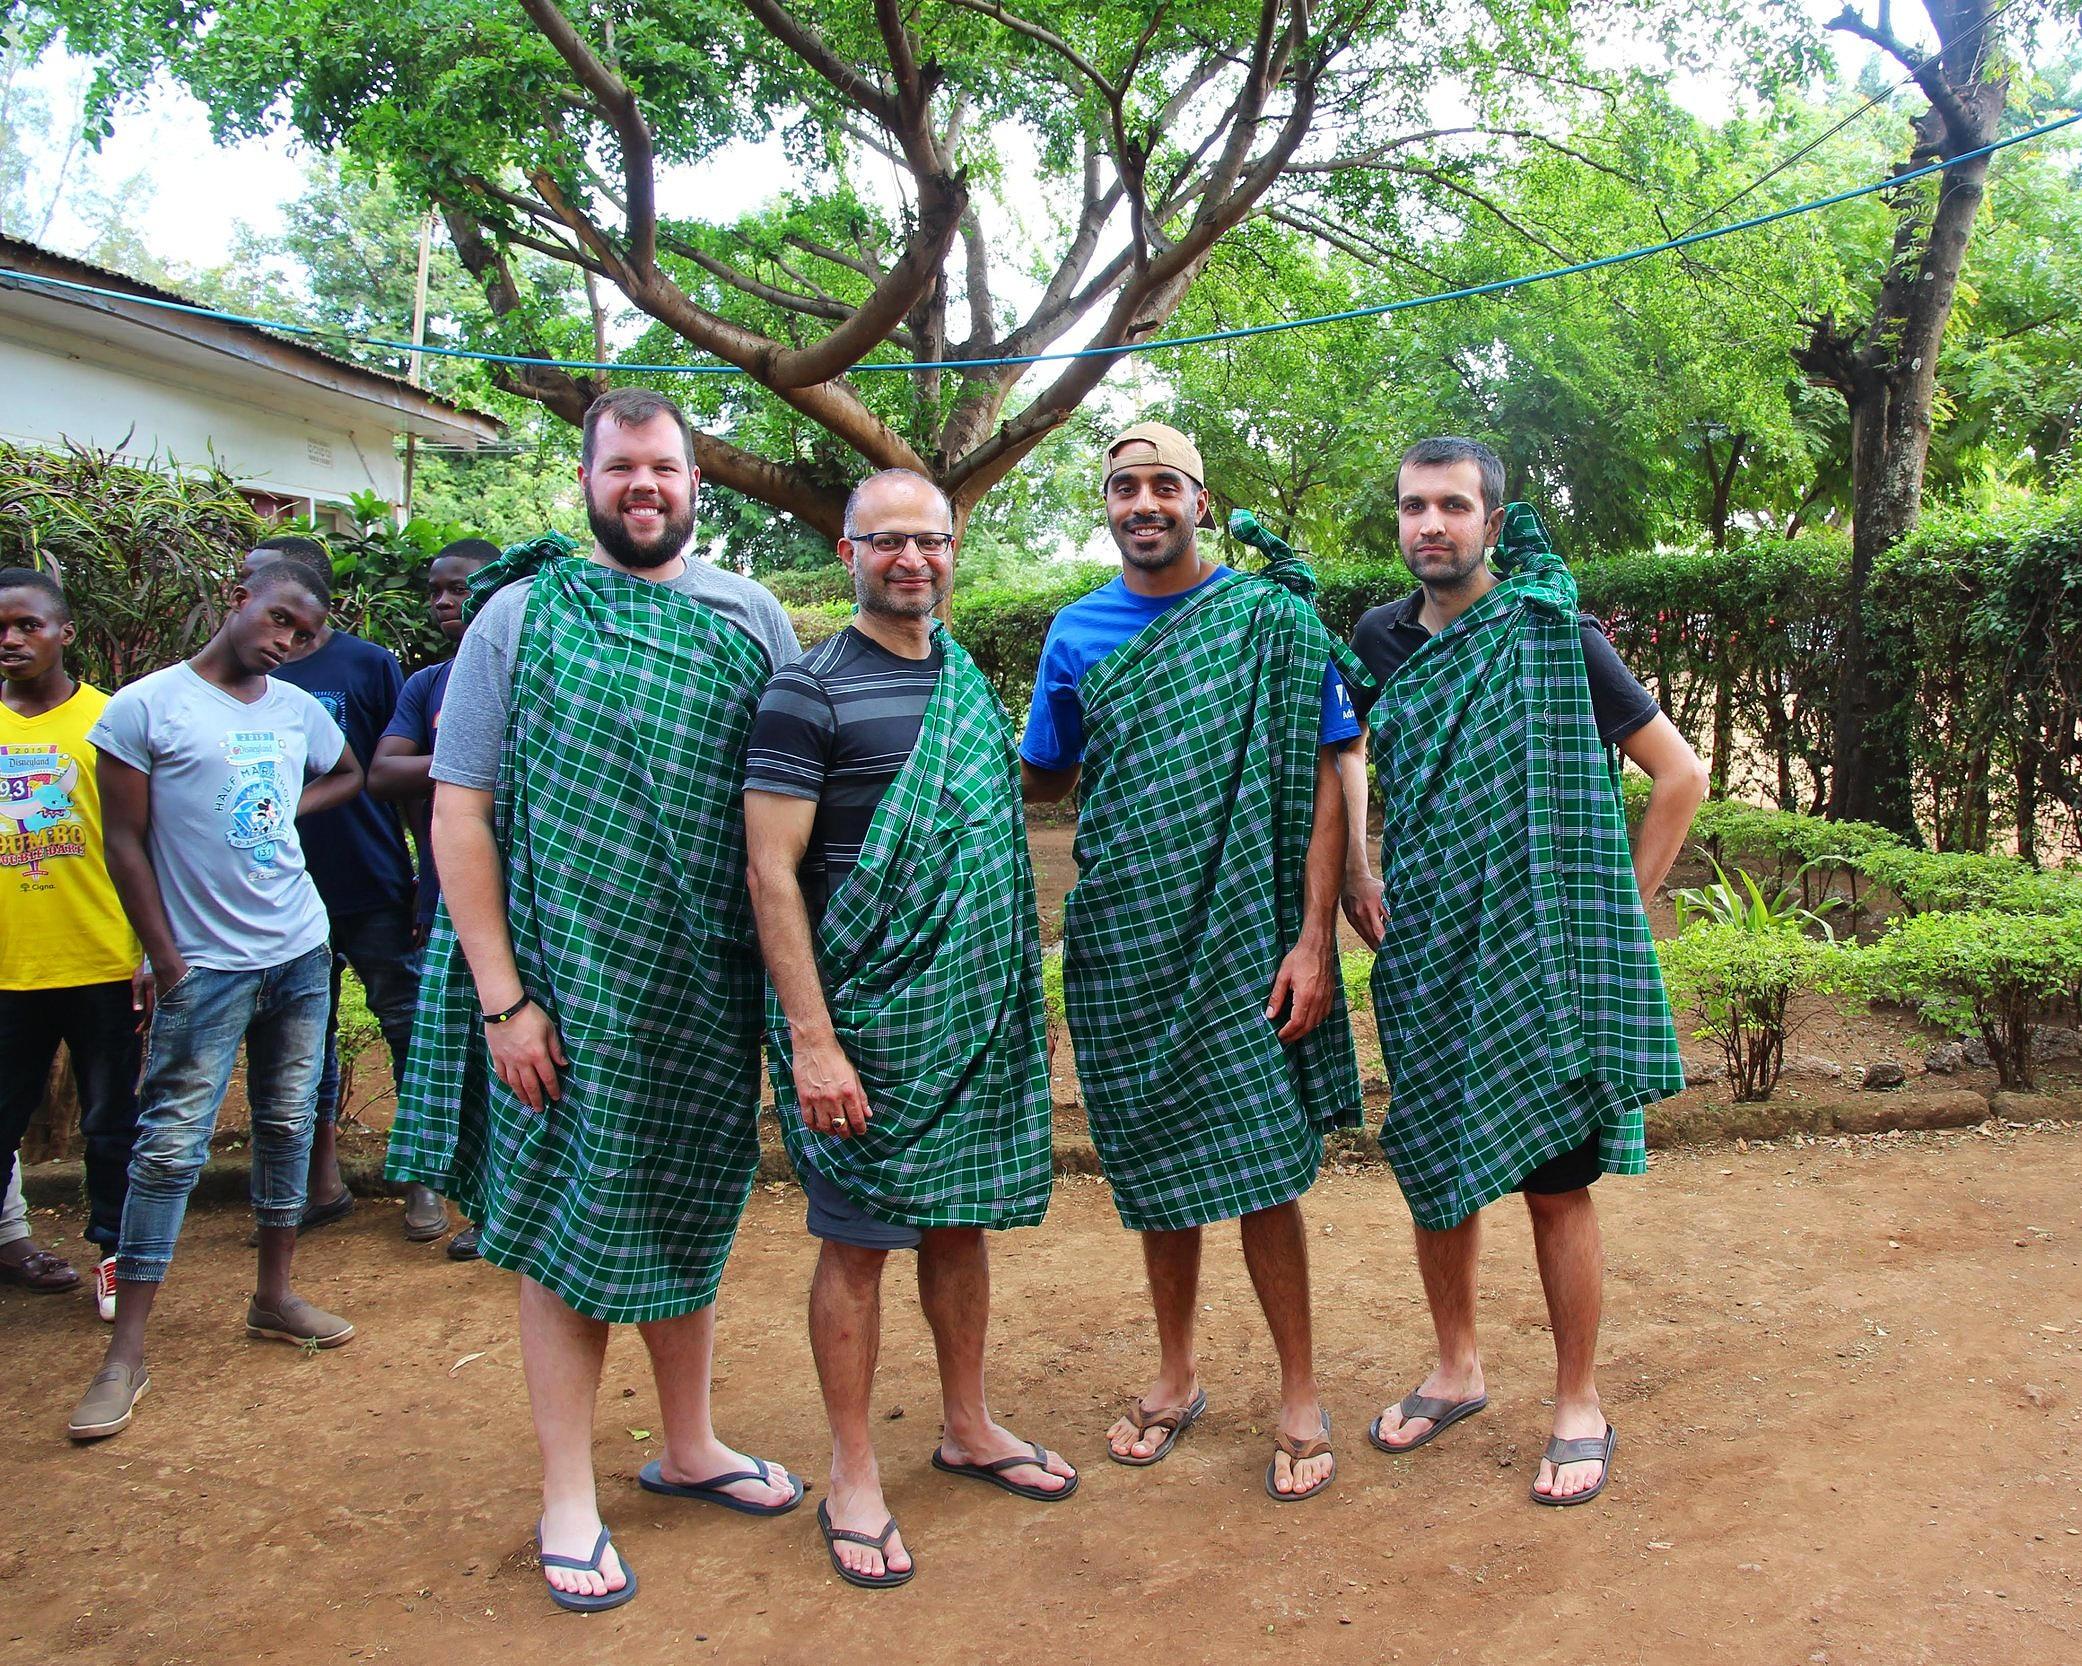 volunteers-in-tradtional-african-clothing.JPG